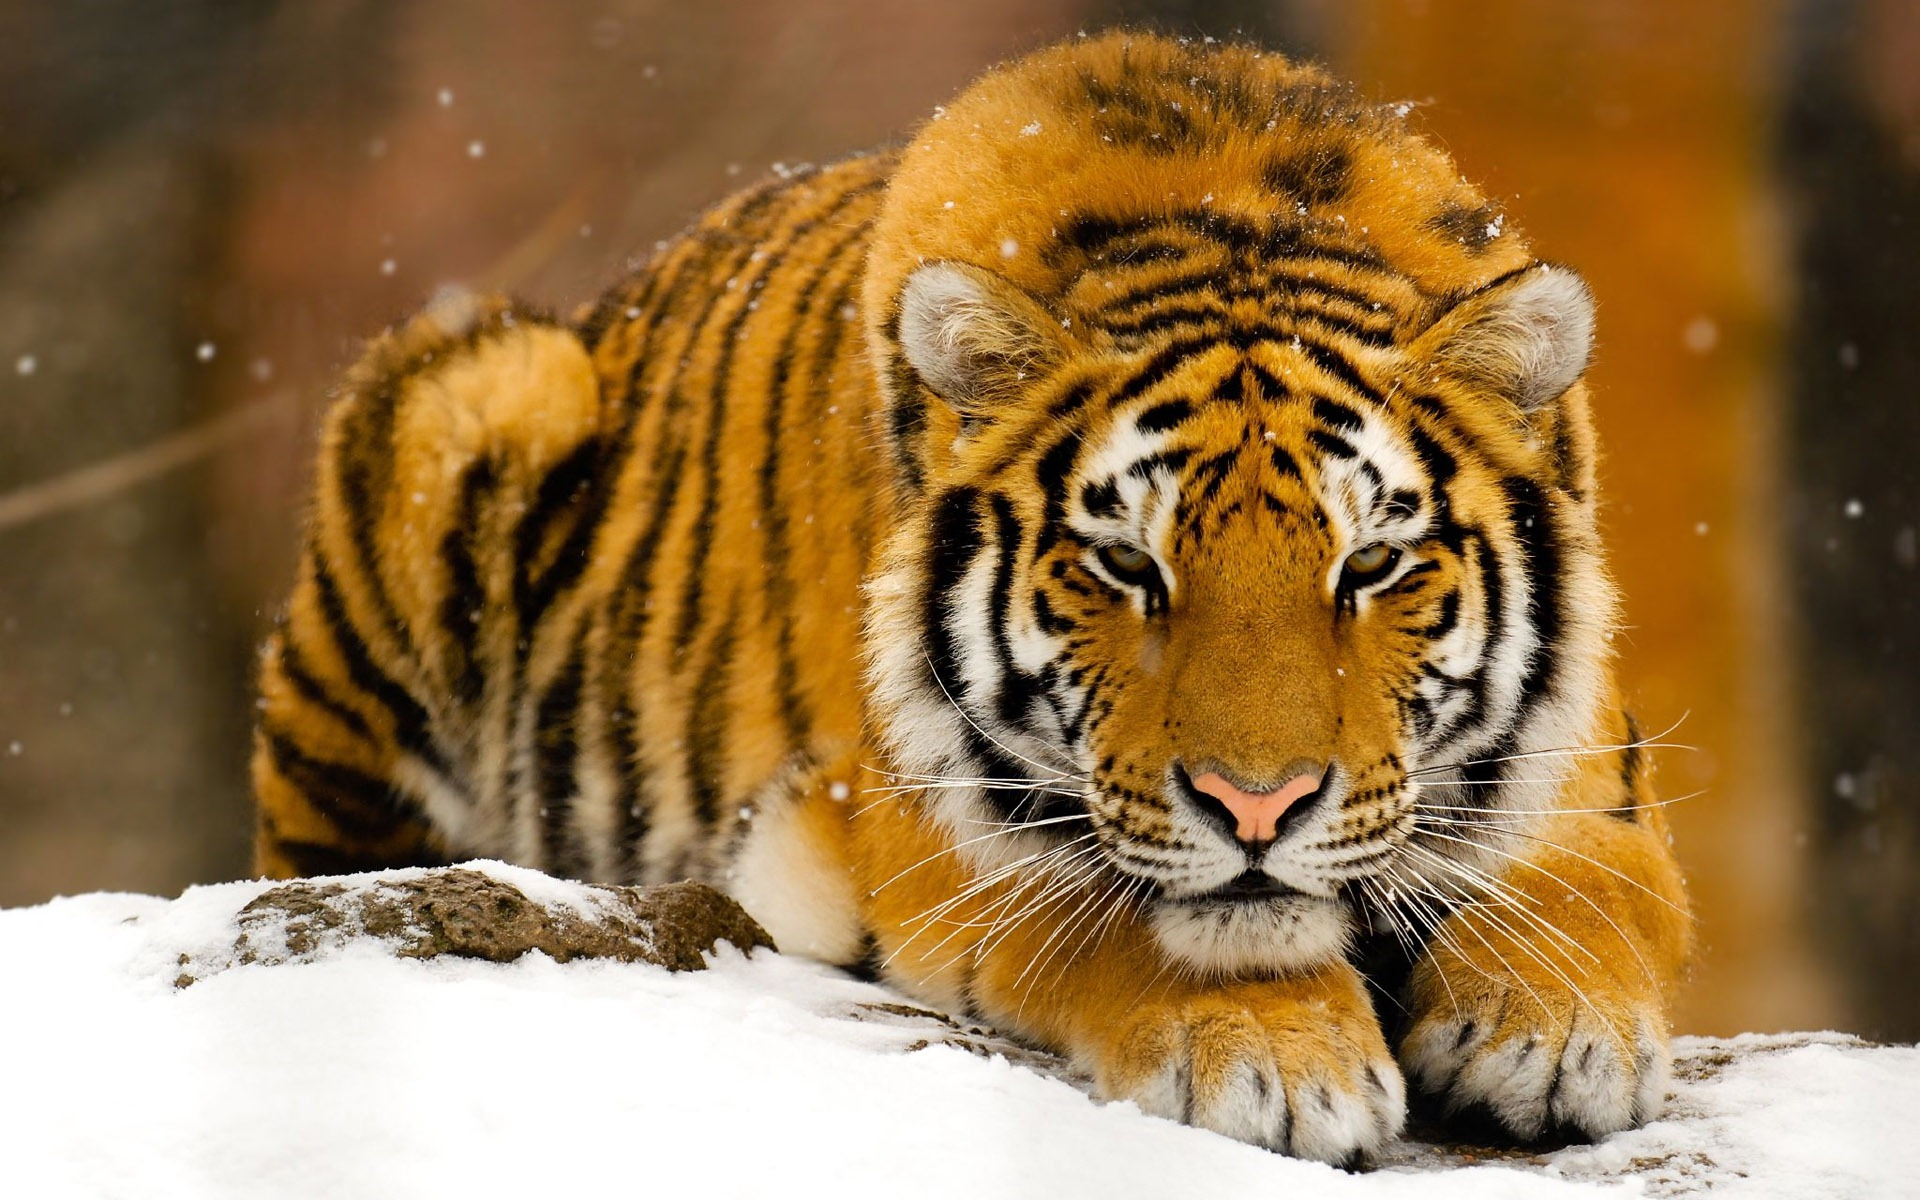 Tiger hd photos HD Wallpaper 1920x1200